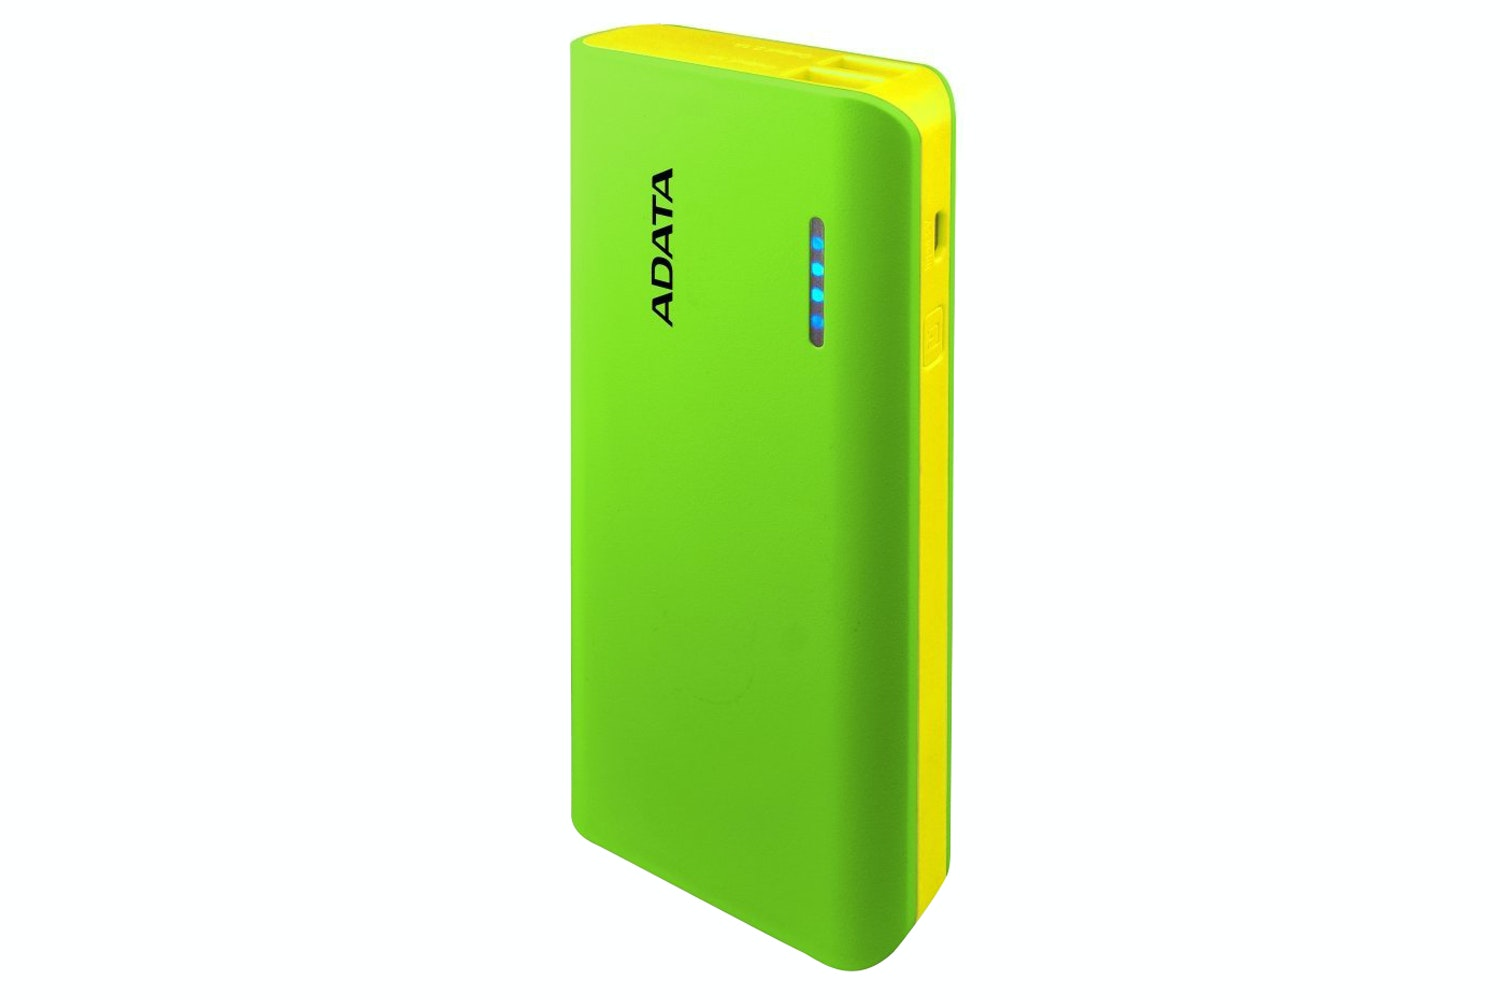 ADATA PT100 Power Bank | Green/Yellow